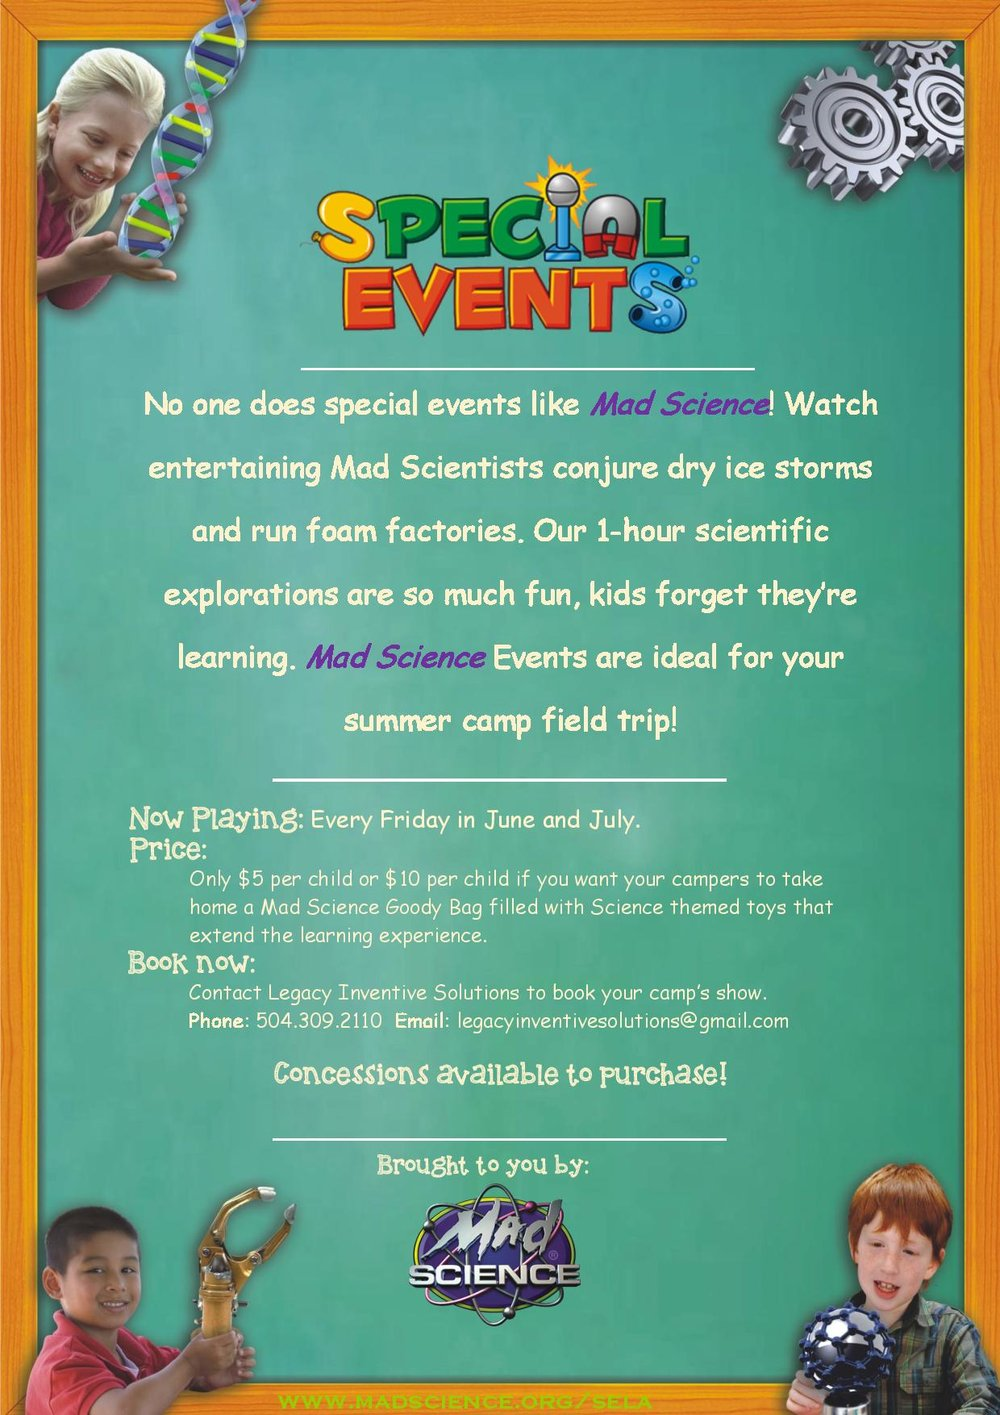 Mad Science Summer Camp Show Final-page-001.jpg